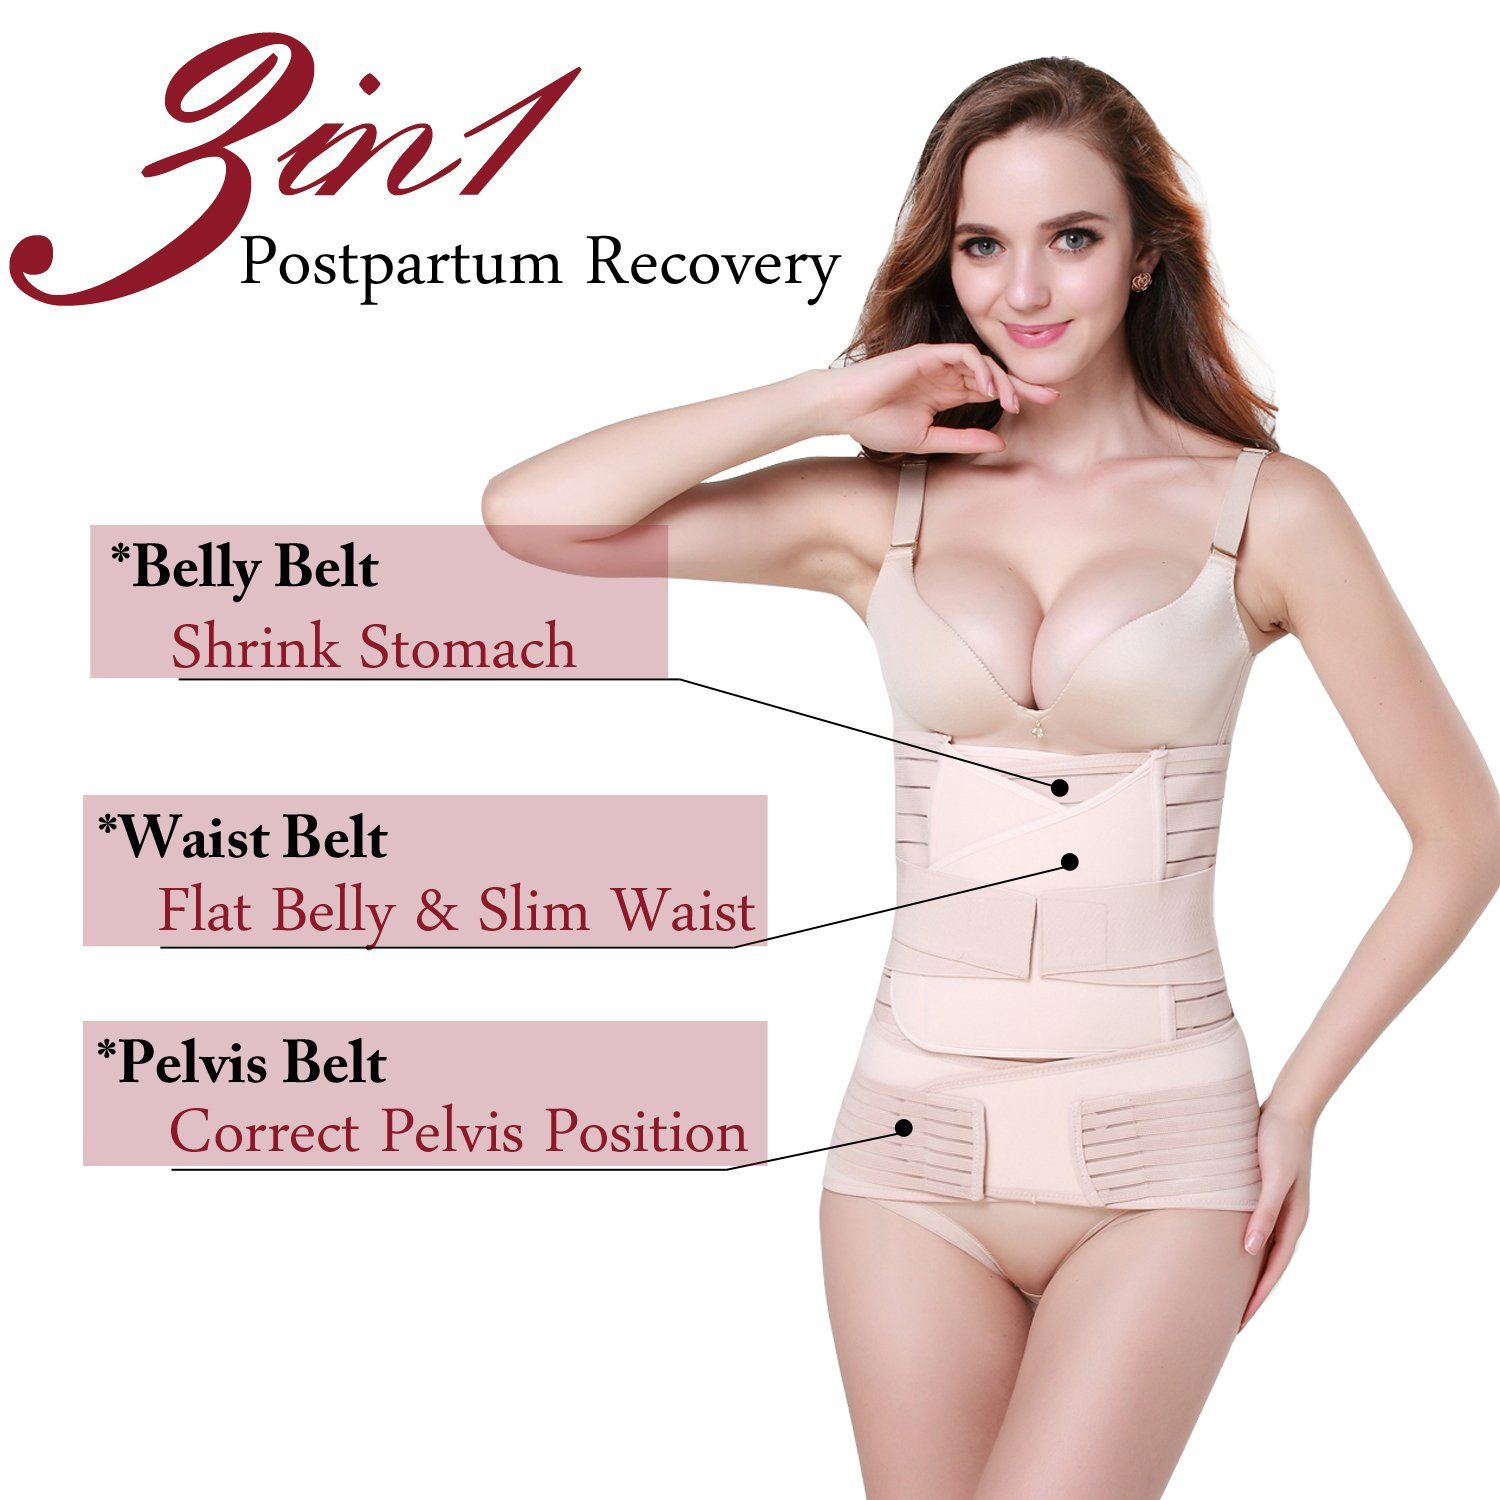 099b5f473 TiRain 3 In 1 Postpartum Support Recovery Belly Waist pelvis Belt  ShapewearPlus Size For Weight Over 190lbs Plastic BagNude -- Be sure to  check out this ...